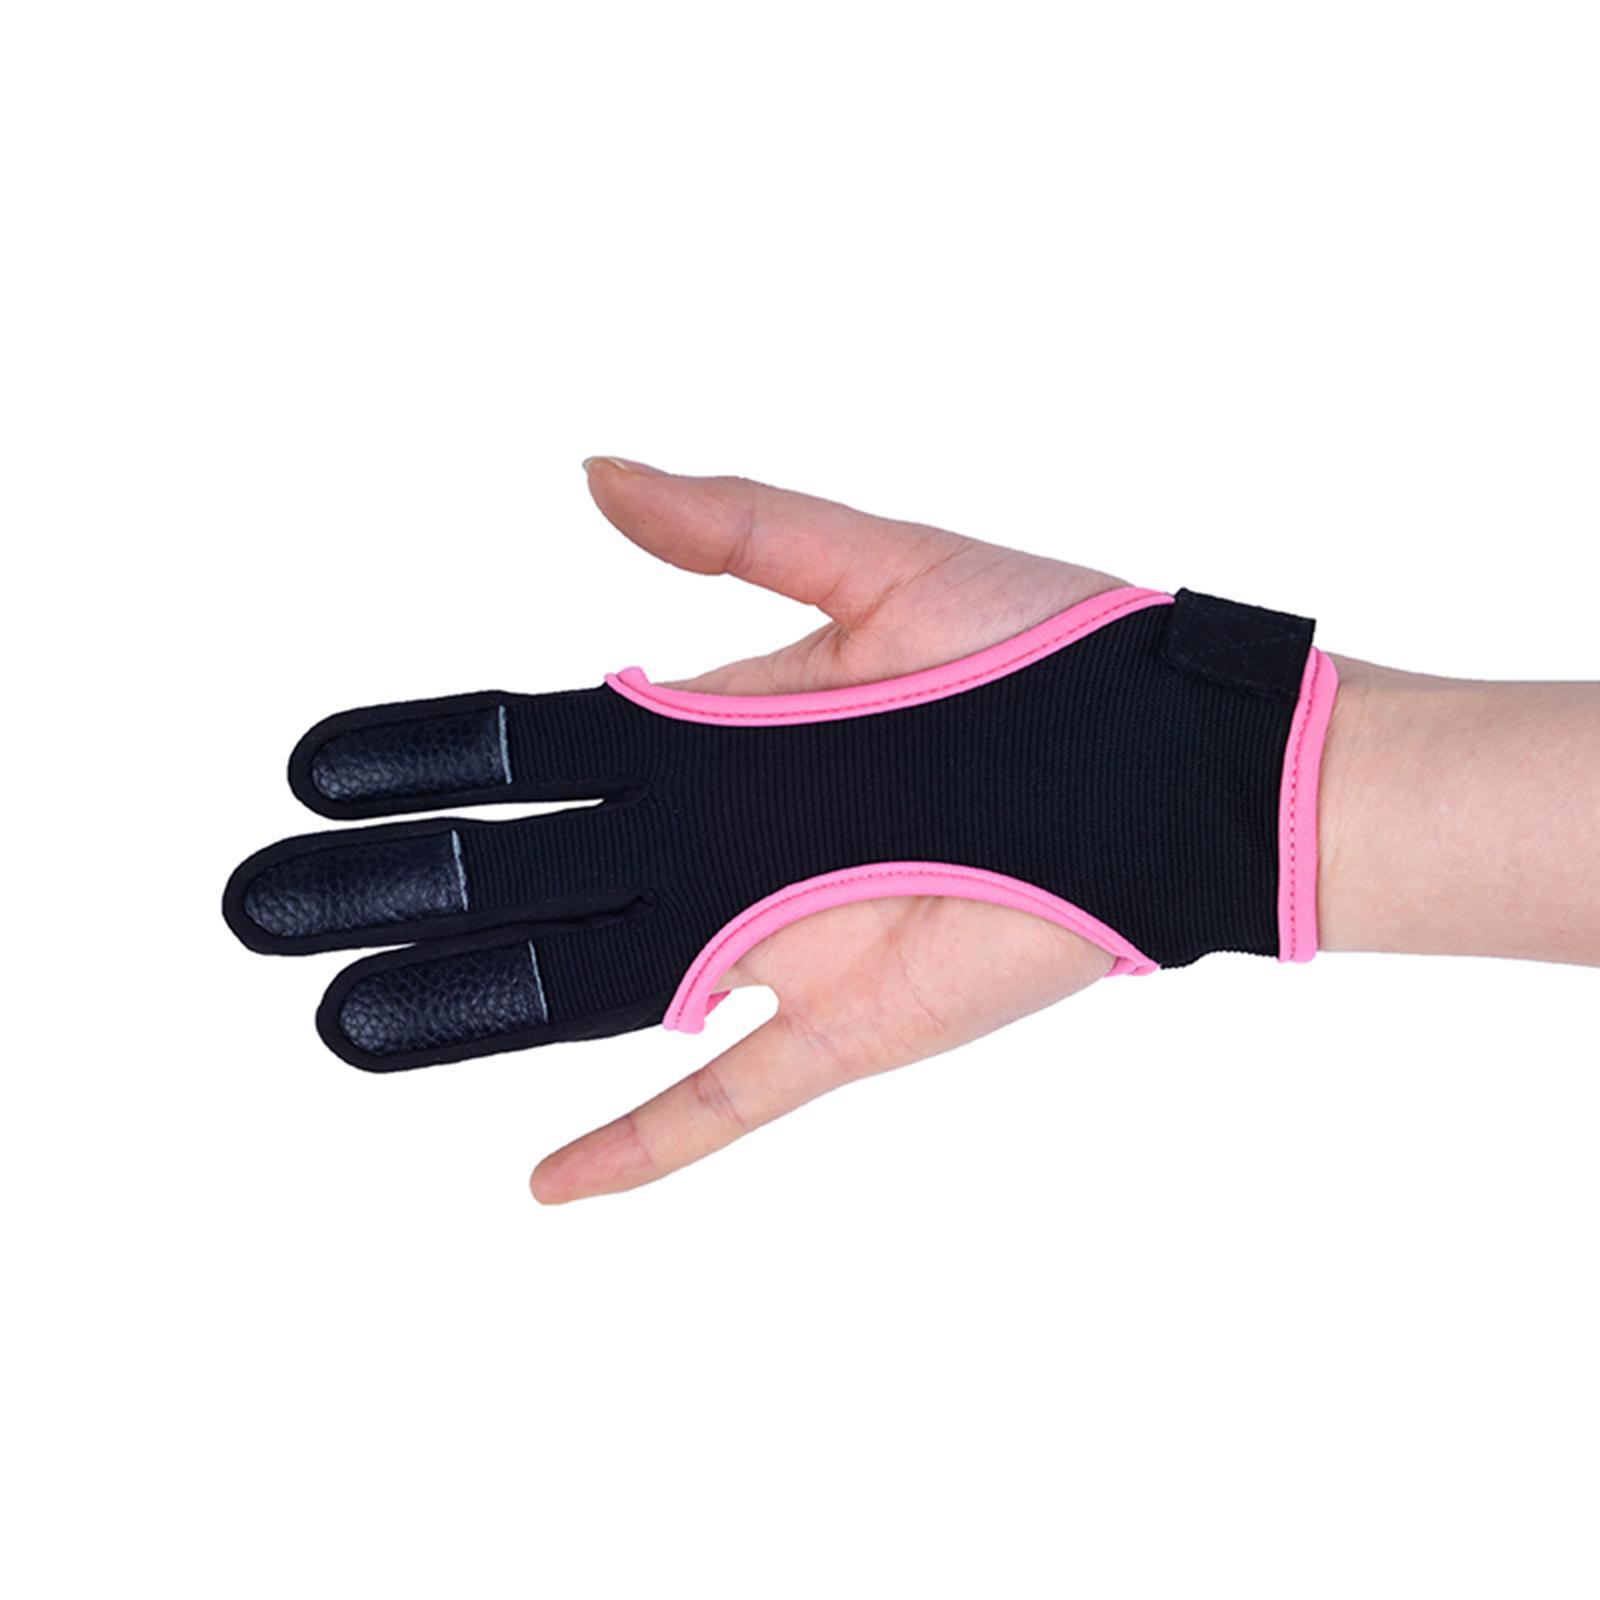 thumbnail 13 - Archery Glove for Recurve Compound Bow 3Finger Leather Guard for Women Men Youth